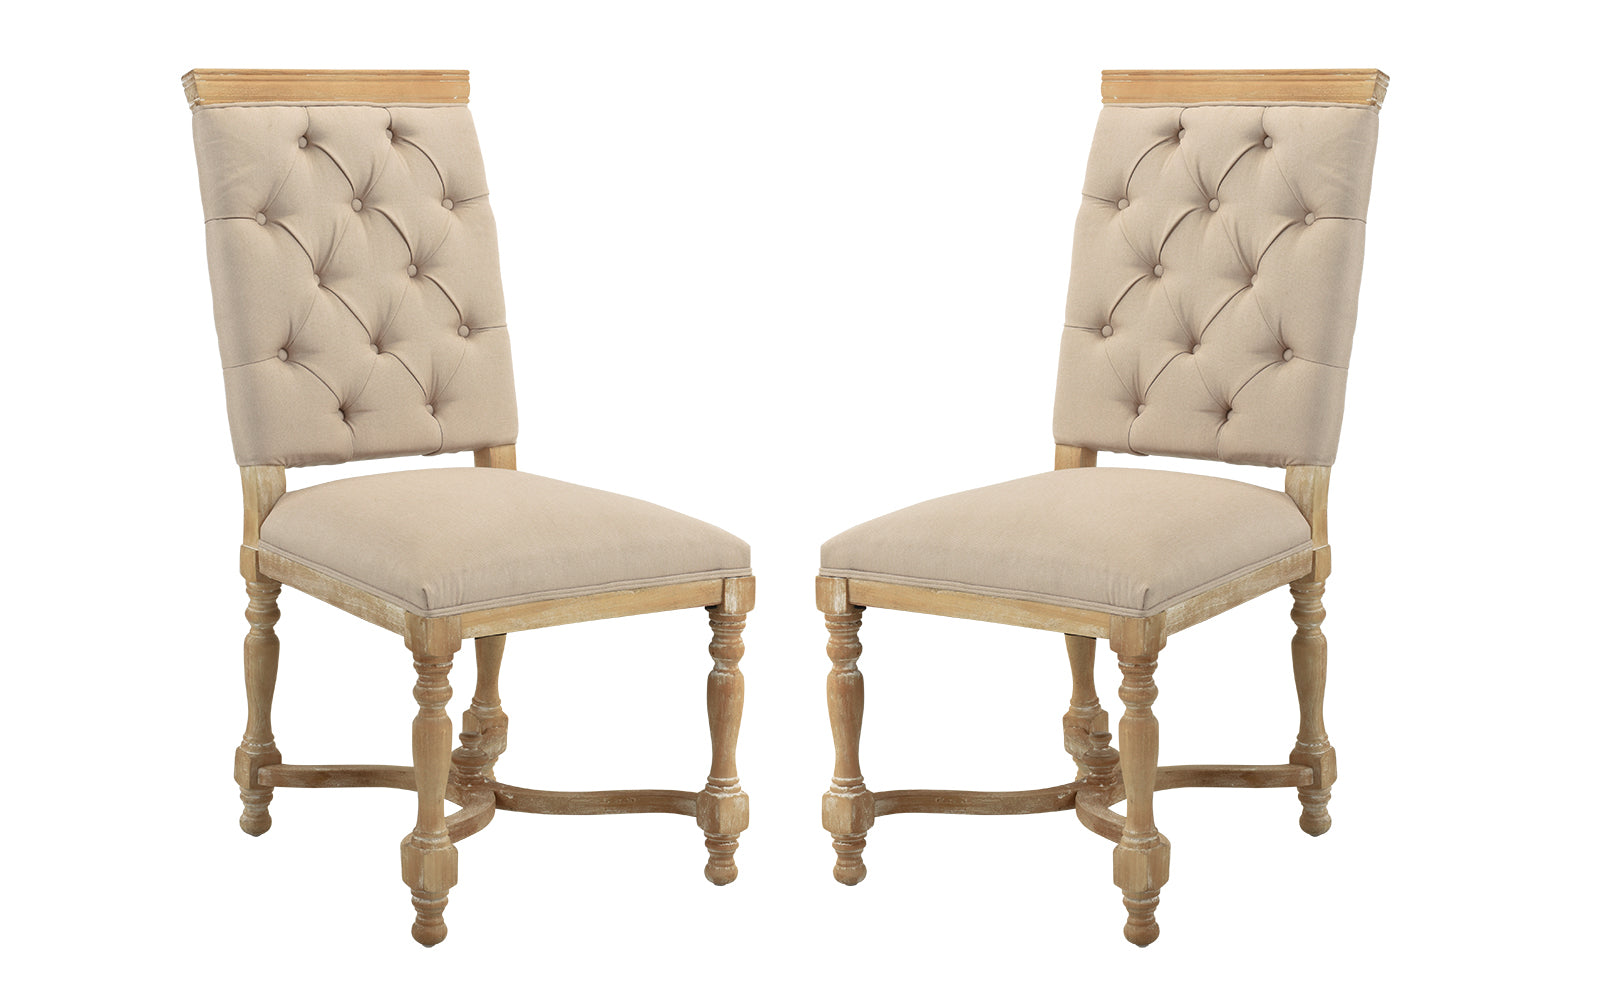 Juste Set of (2) Victoria Style Tufted Dining Chairs with Carved Legs  sc 1 st  Sofamania & Juste Set of (2) Victoria Style Tufted Dining Chairs with Carved ...